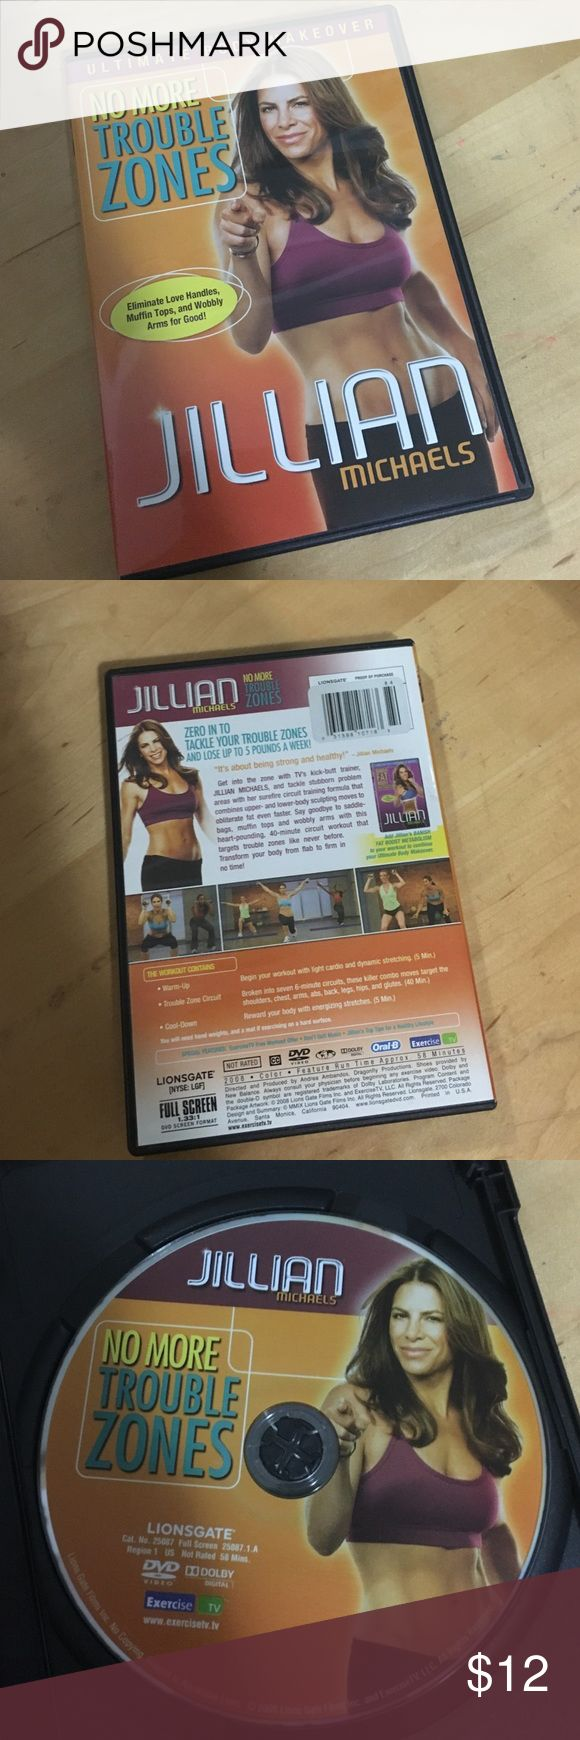 Julian Michaels DVD Fun workout by Jillian Michaels. Gently used a few times. Includes fun circuits and full workout in DVD. Other